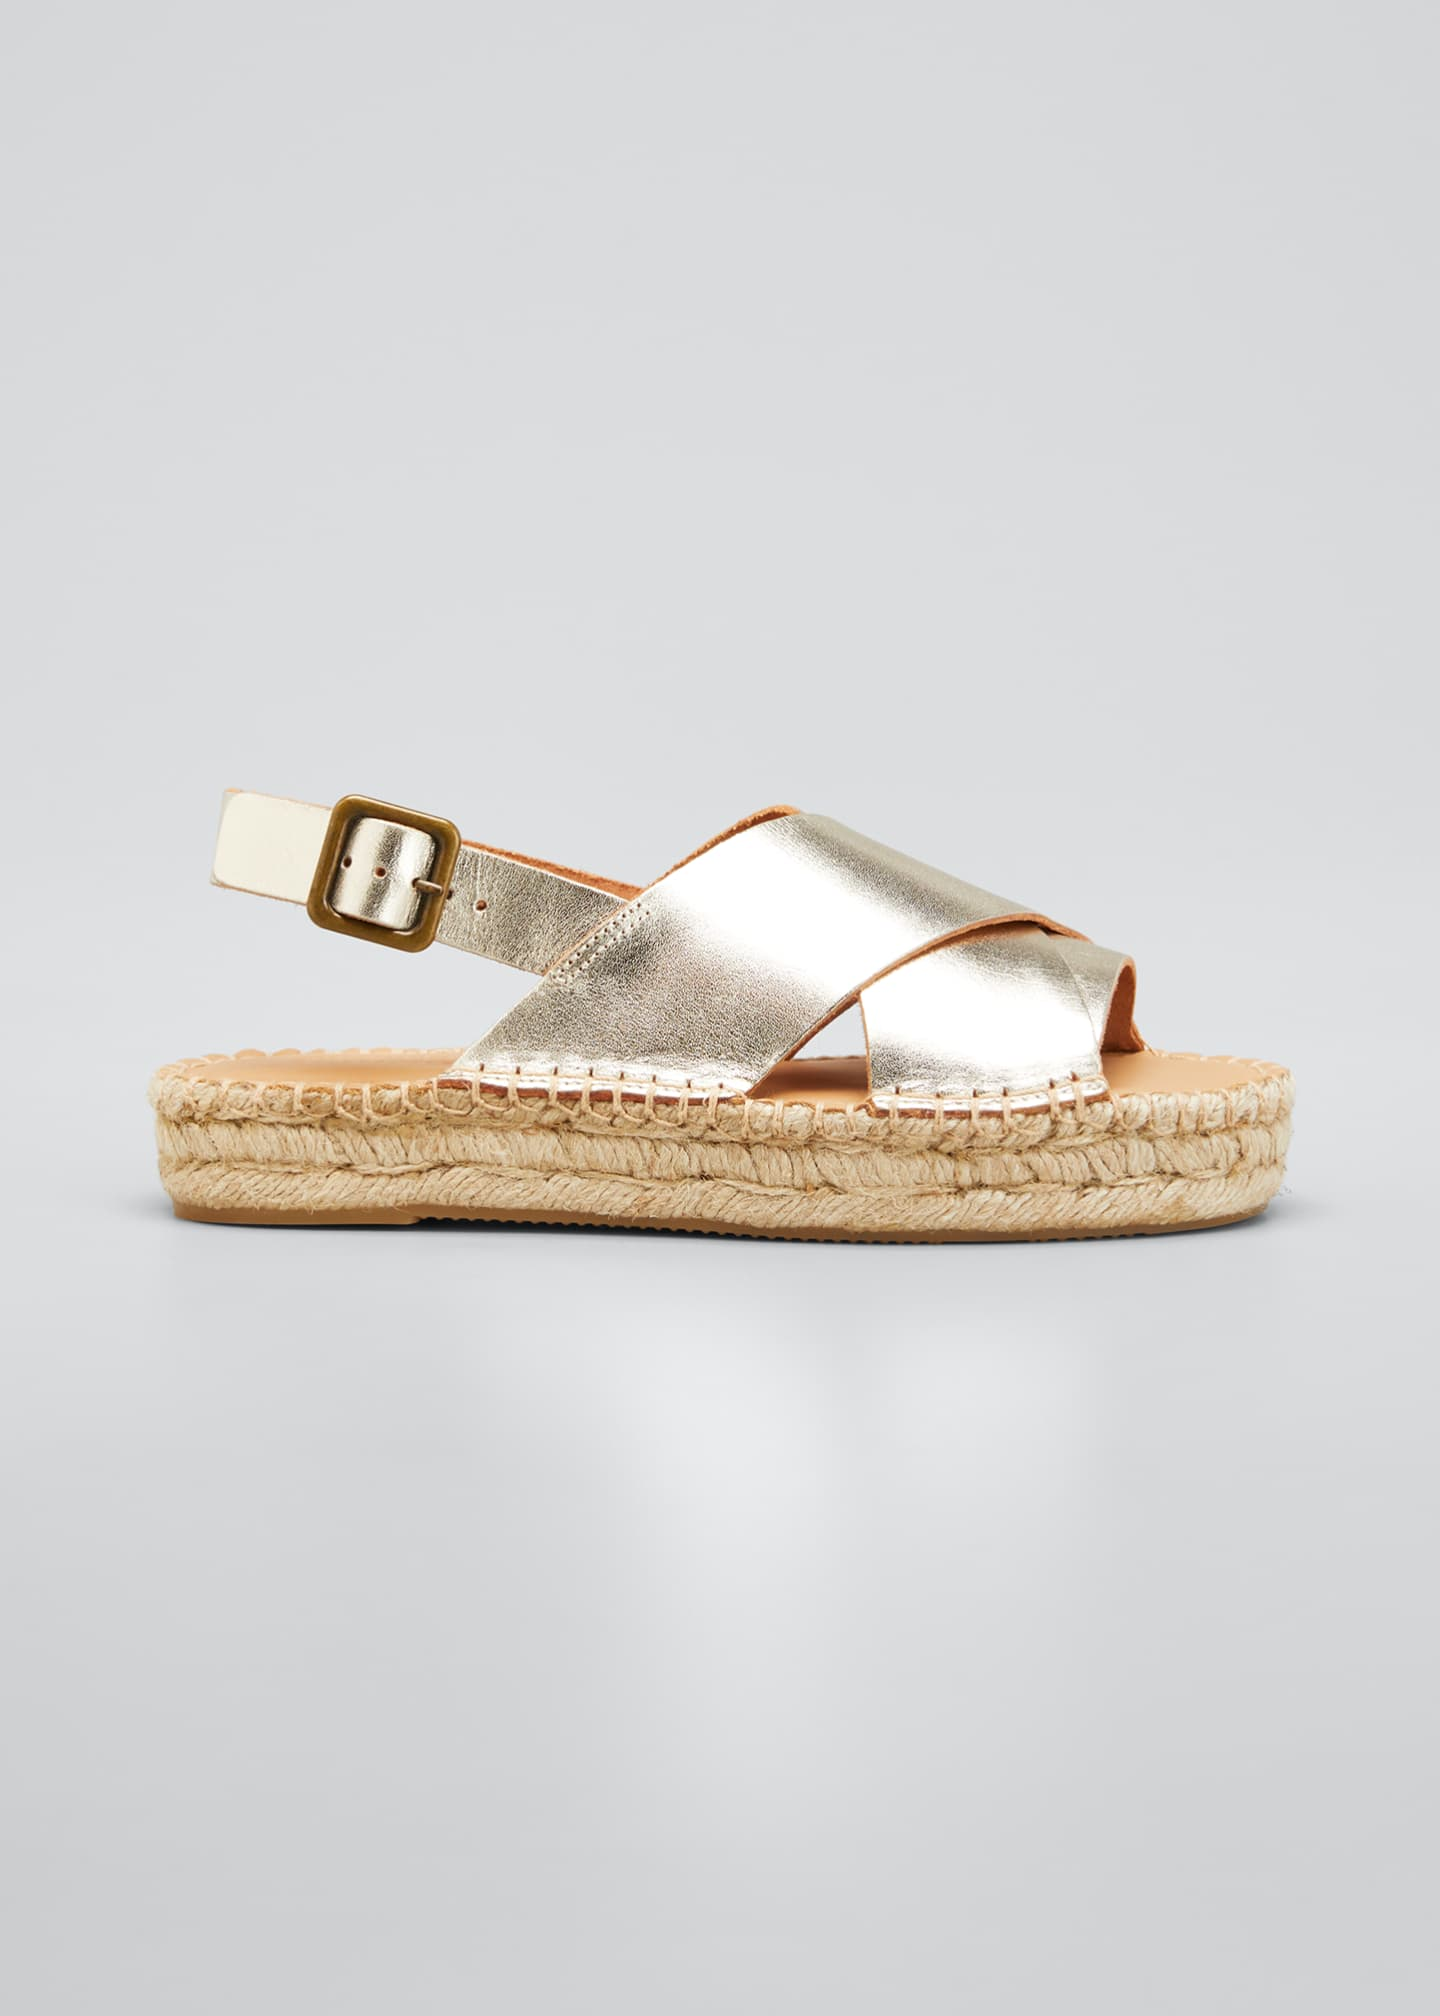 Image 1 of 3: Eloise Espadrille Sandals